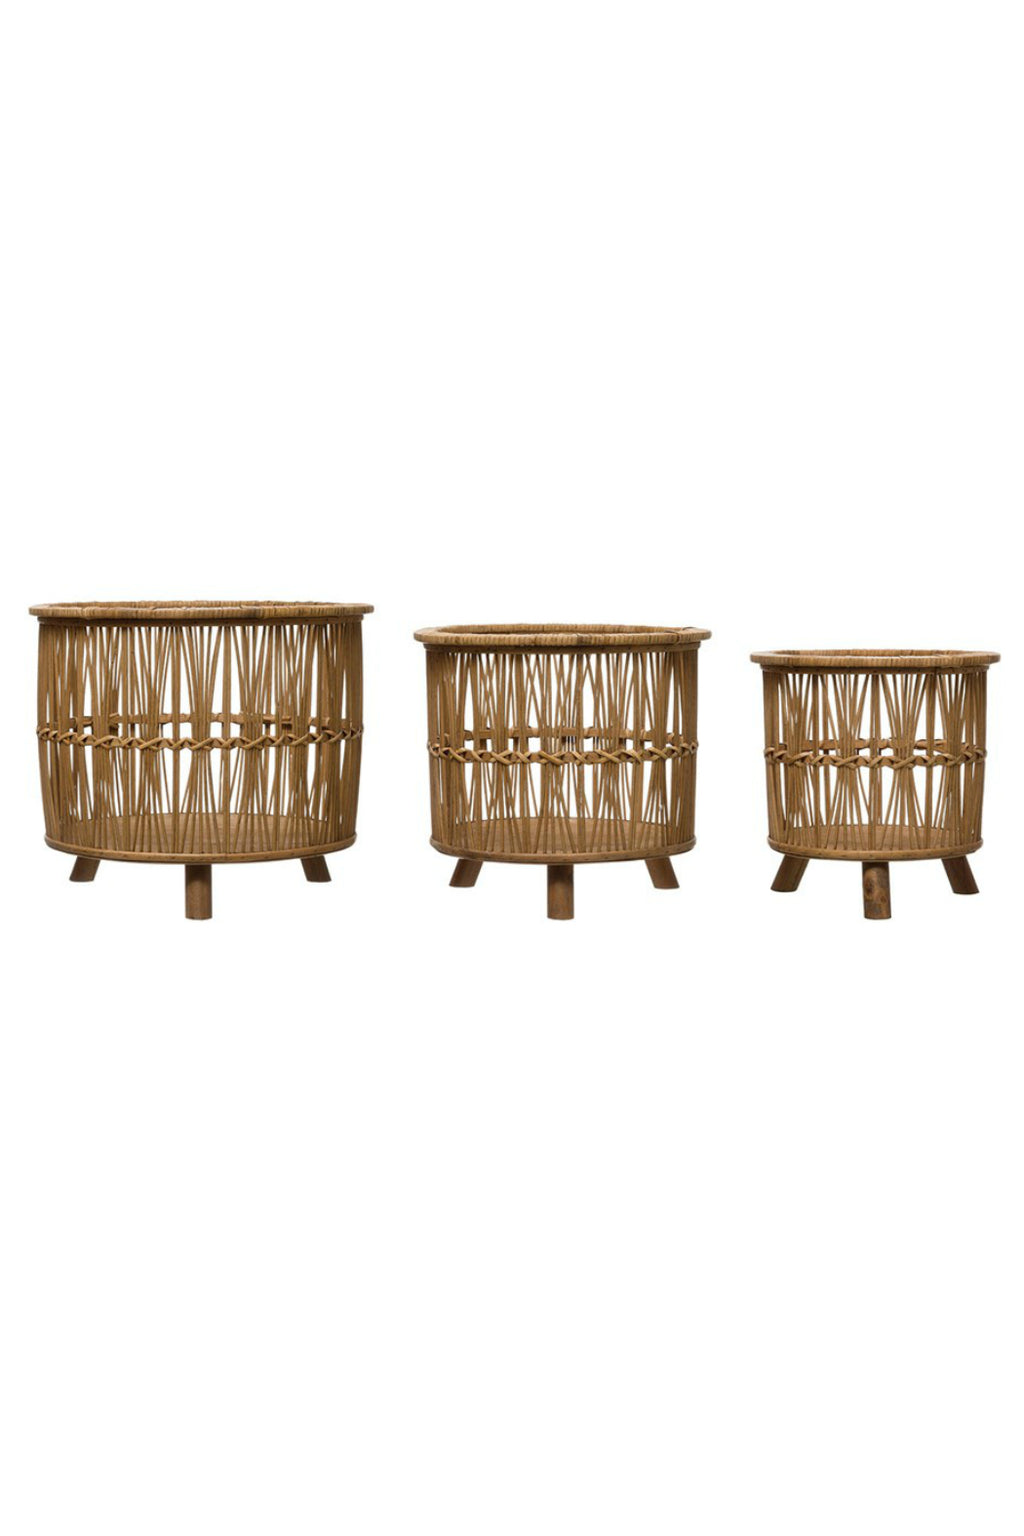 Creative Co-op Woven Bamboo Footed Baskets